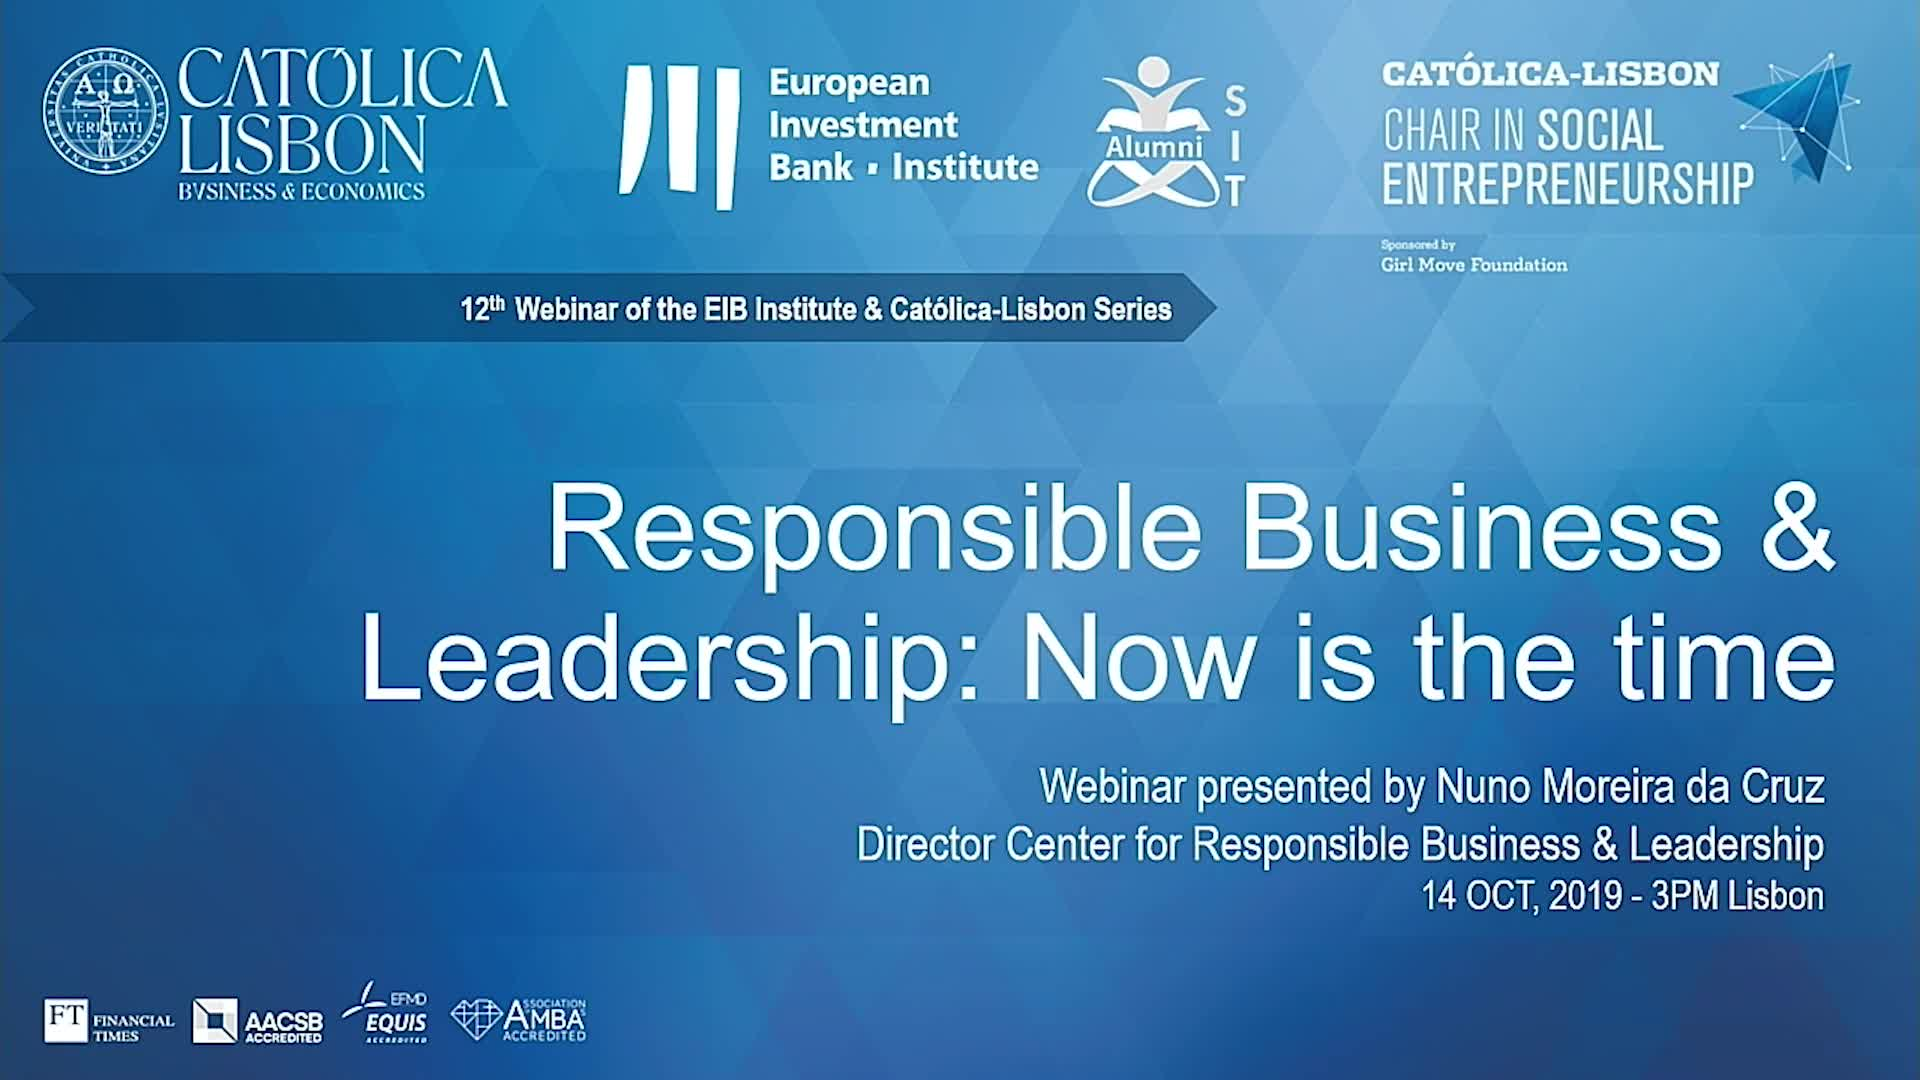 Webinar 12 - Responsible Business & Leadership: Now is the Time